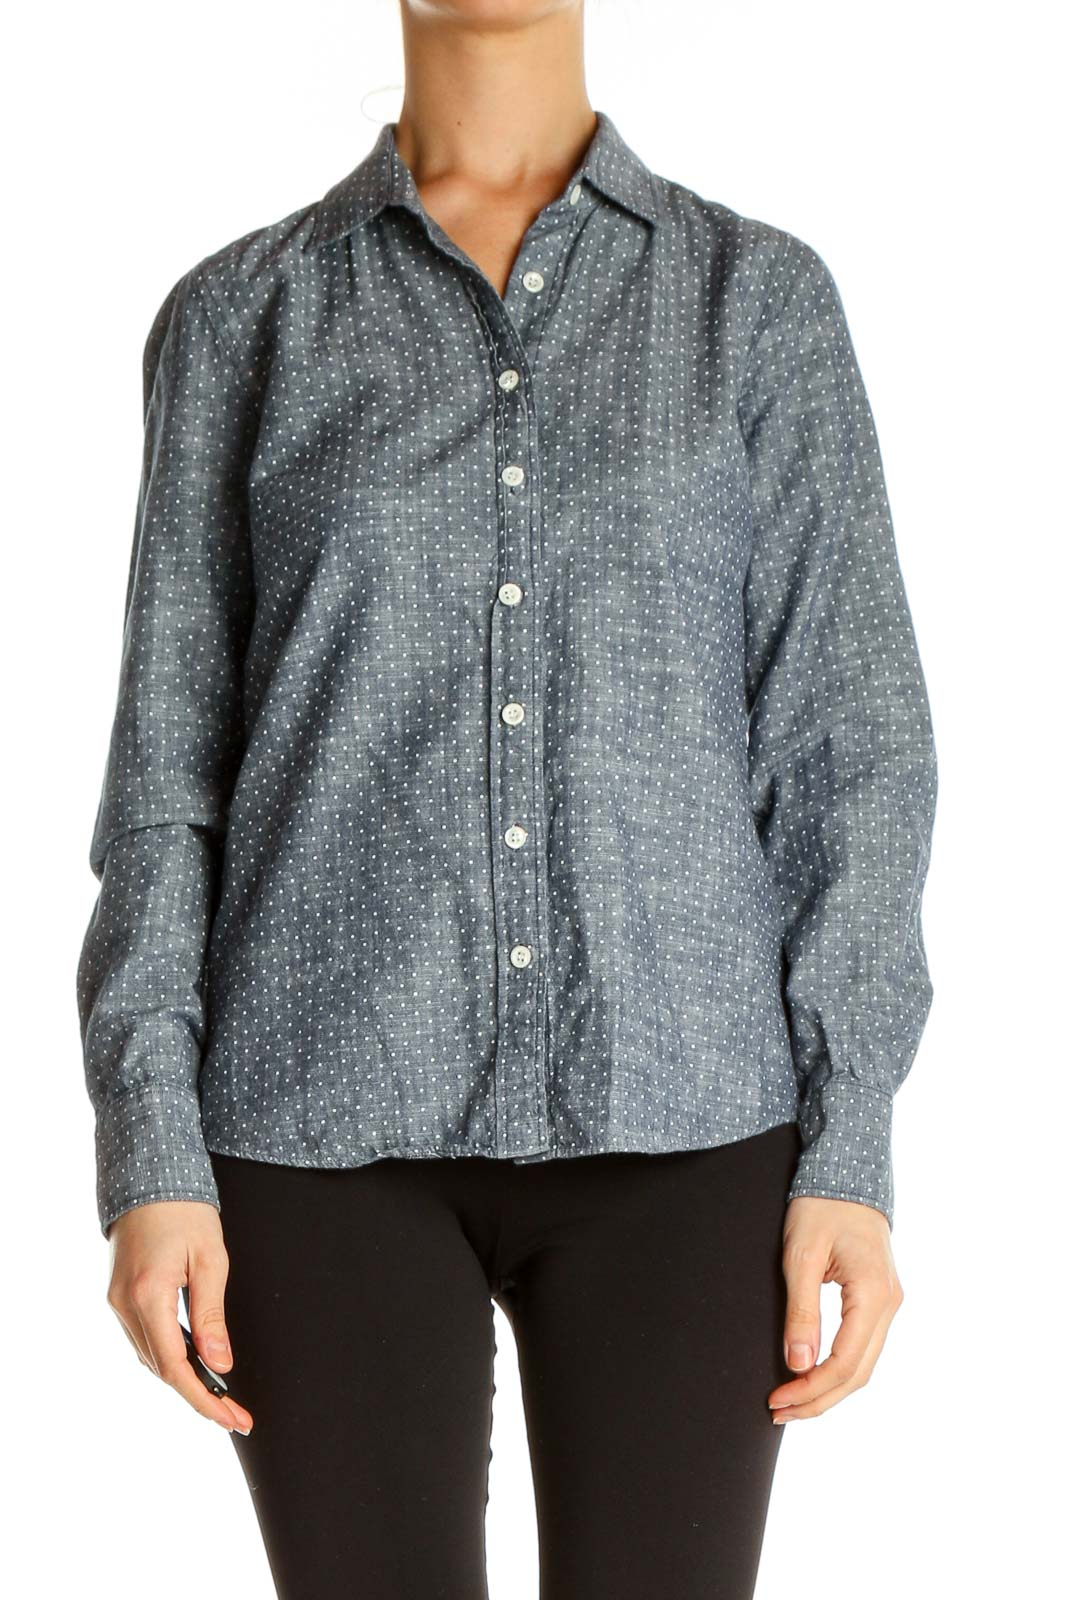 Gray Object Print All Day Wear Shirt Front